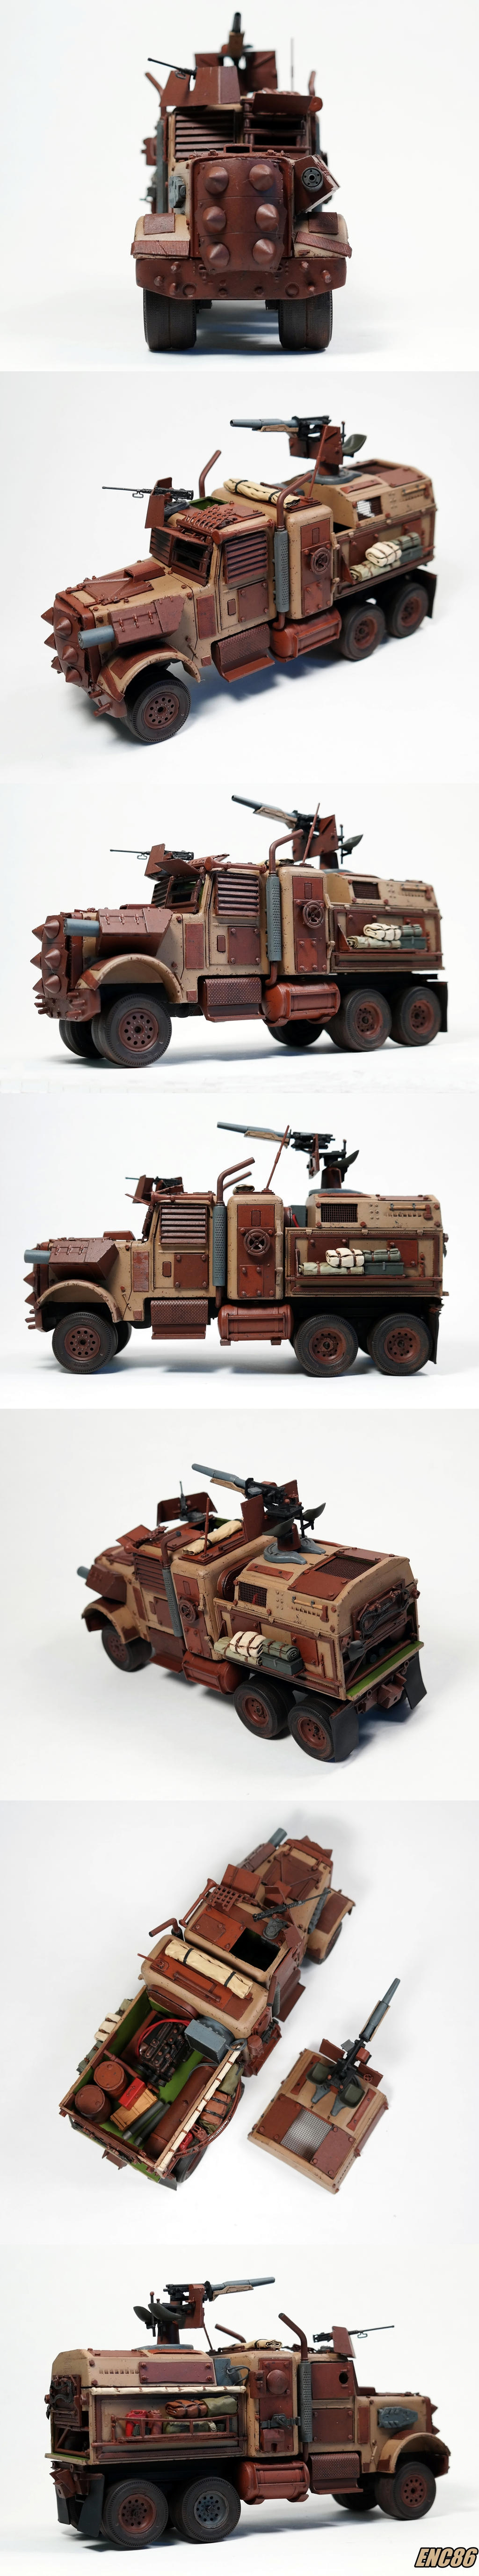 Death Rig Collage by enc86